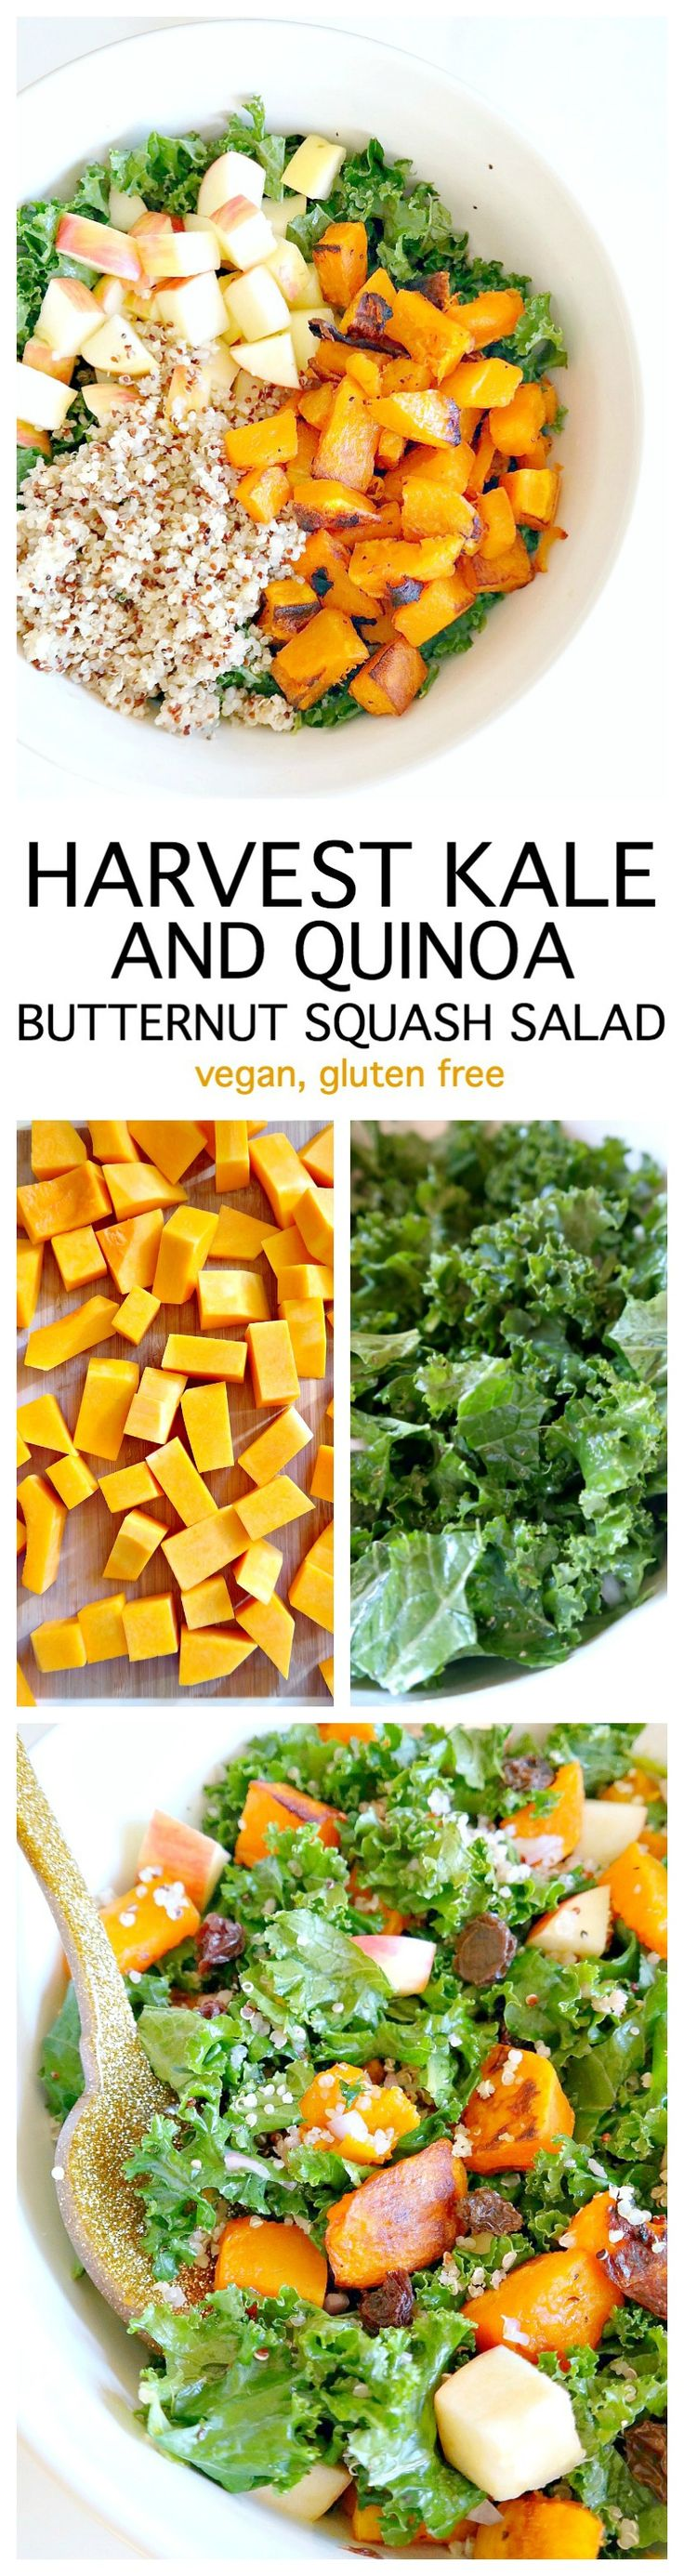 Harvest Kale and Quinoa Butternut Squash Salad. Vegan and Gluten Free with a Oil-Free Champagne Vinaigrette. Roasted butternut squash, crisp apple, nourishing quinoa, kale and raisins for a hint of sweetness. A lean, clean & green fall recipe that's perfe